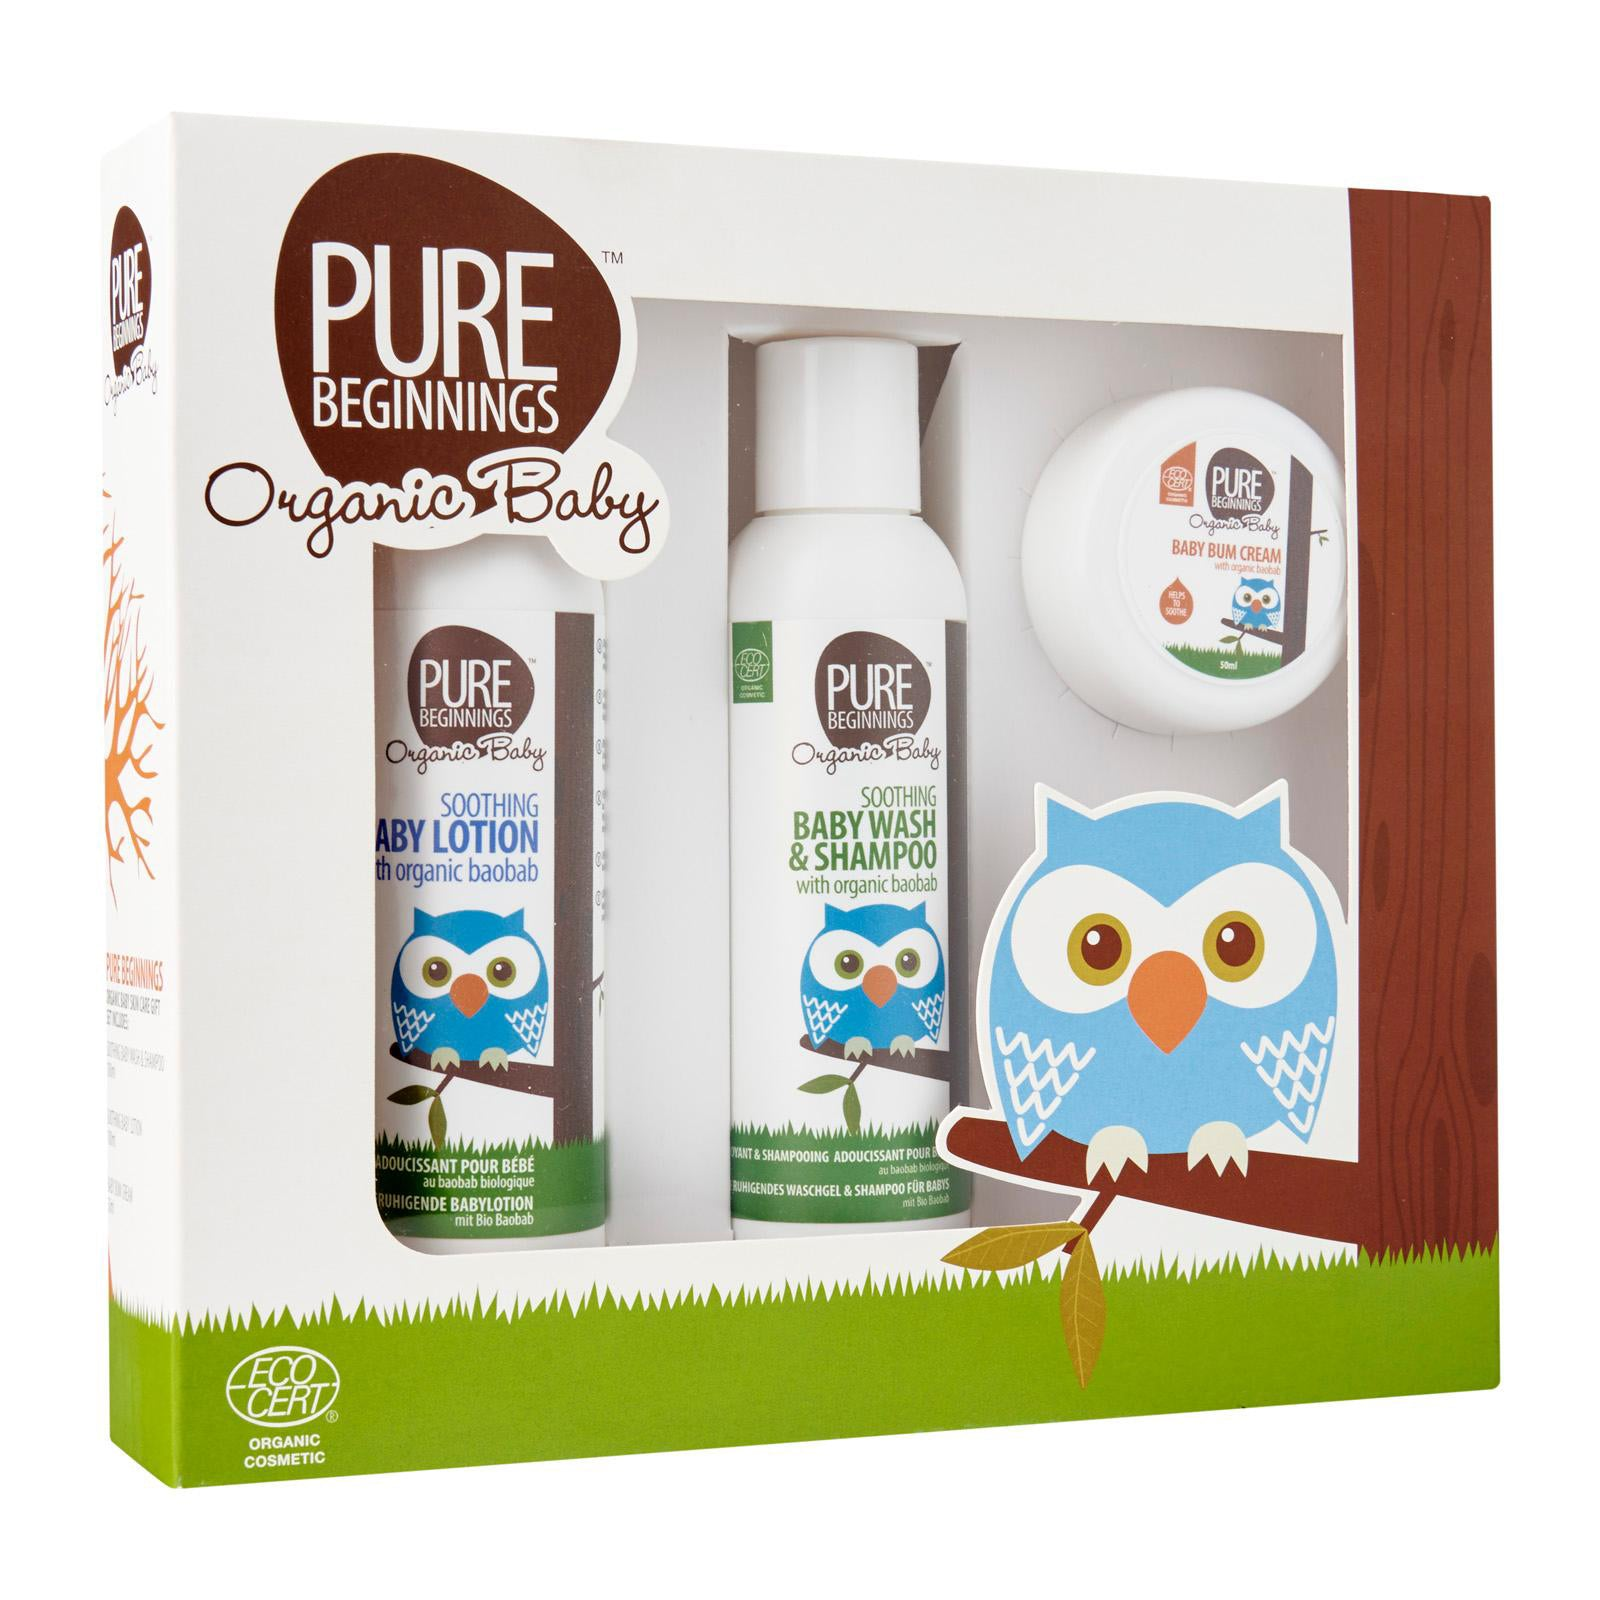 Pure Beginnings Baby Gift Set